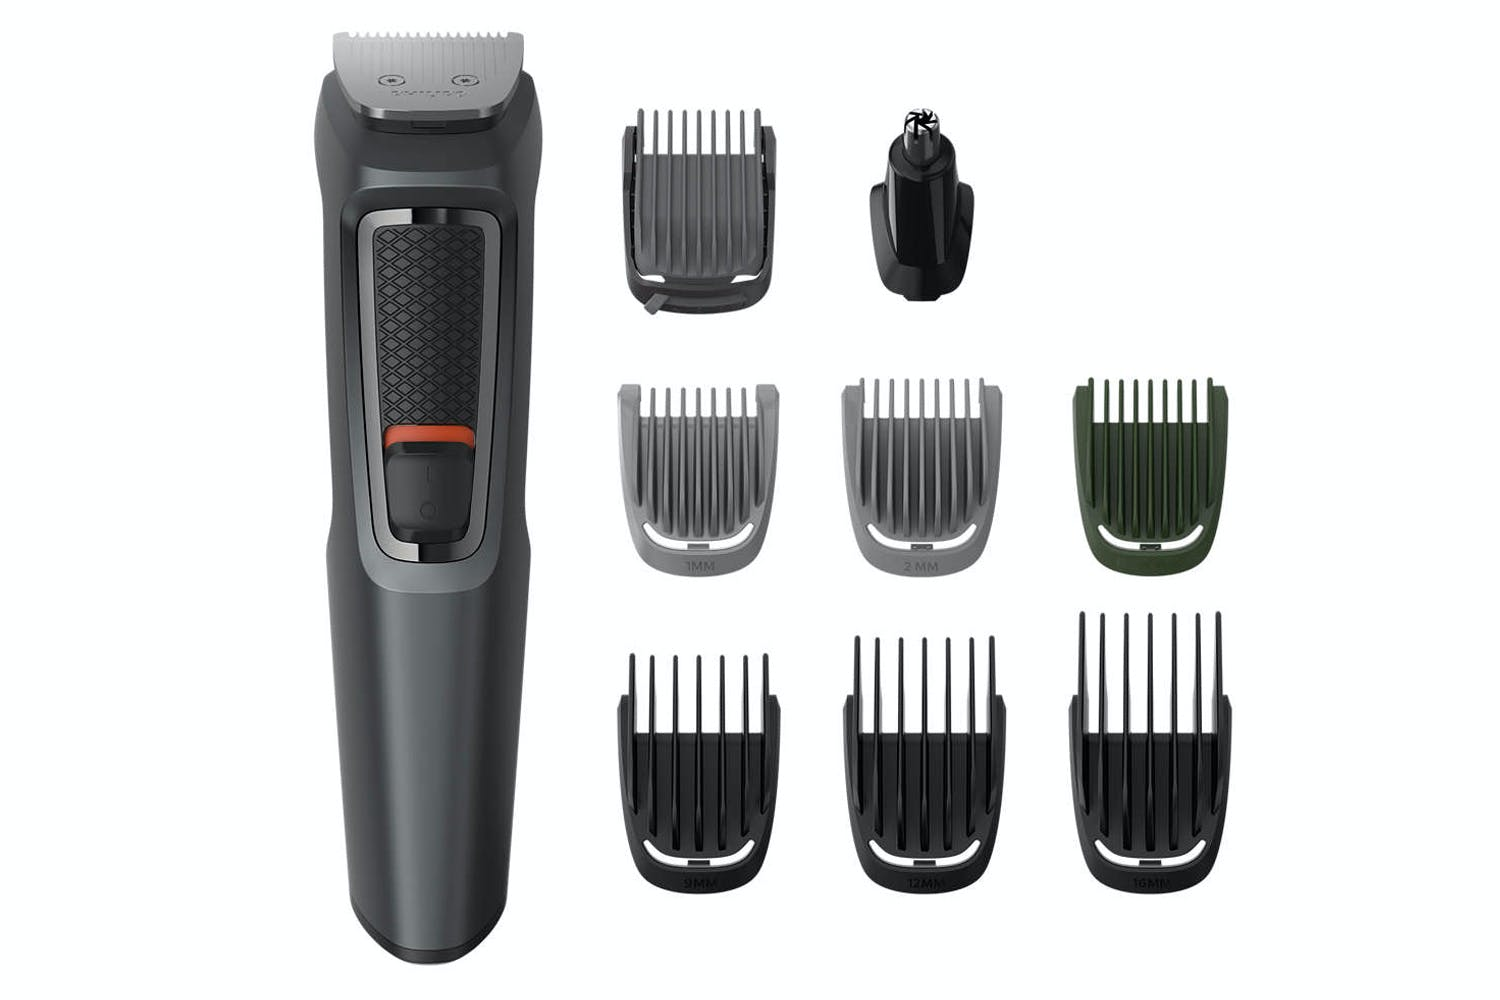 Philips Multigroom 3000 9-in-1 Trimmer